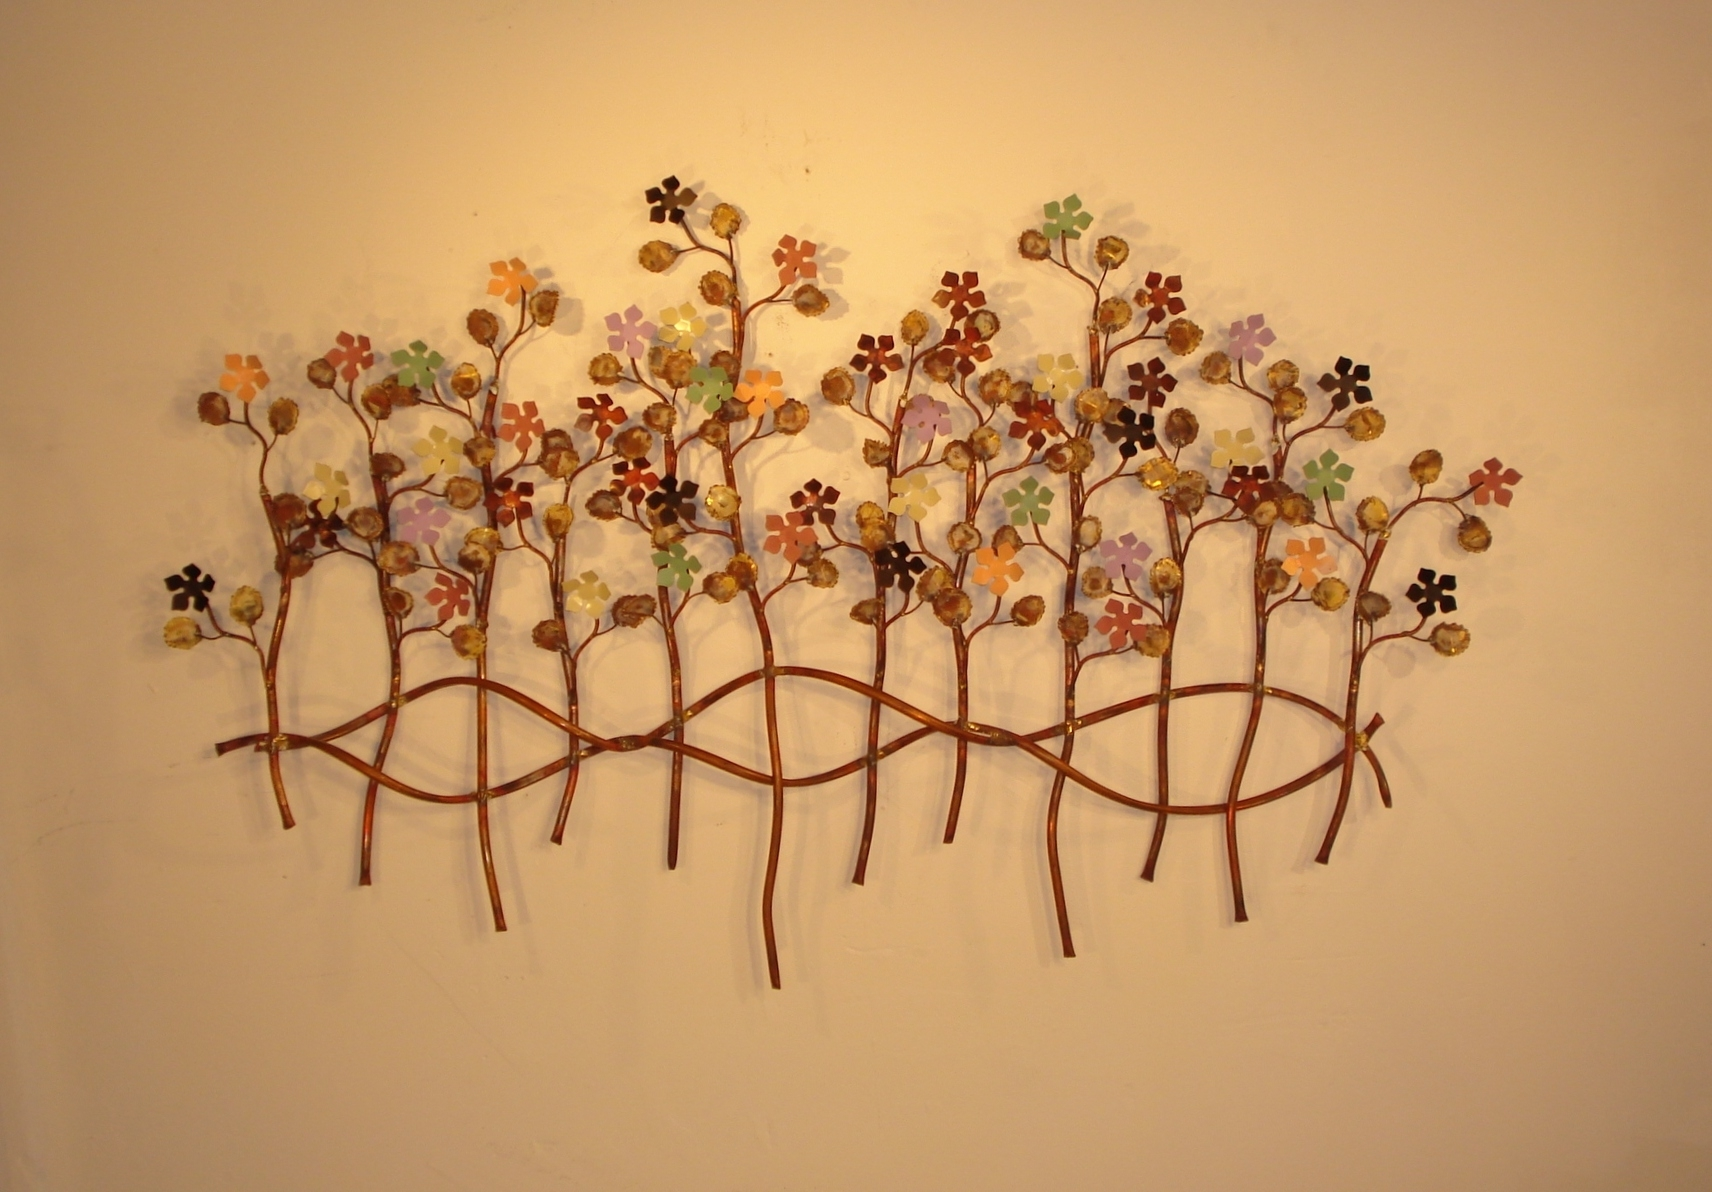 Botanical Metal Wall Art Pertaining To Popular Botanical Metal Wall Decor, Sculptures And Art (View 10 of 15)